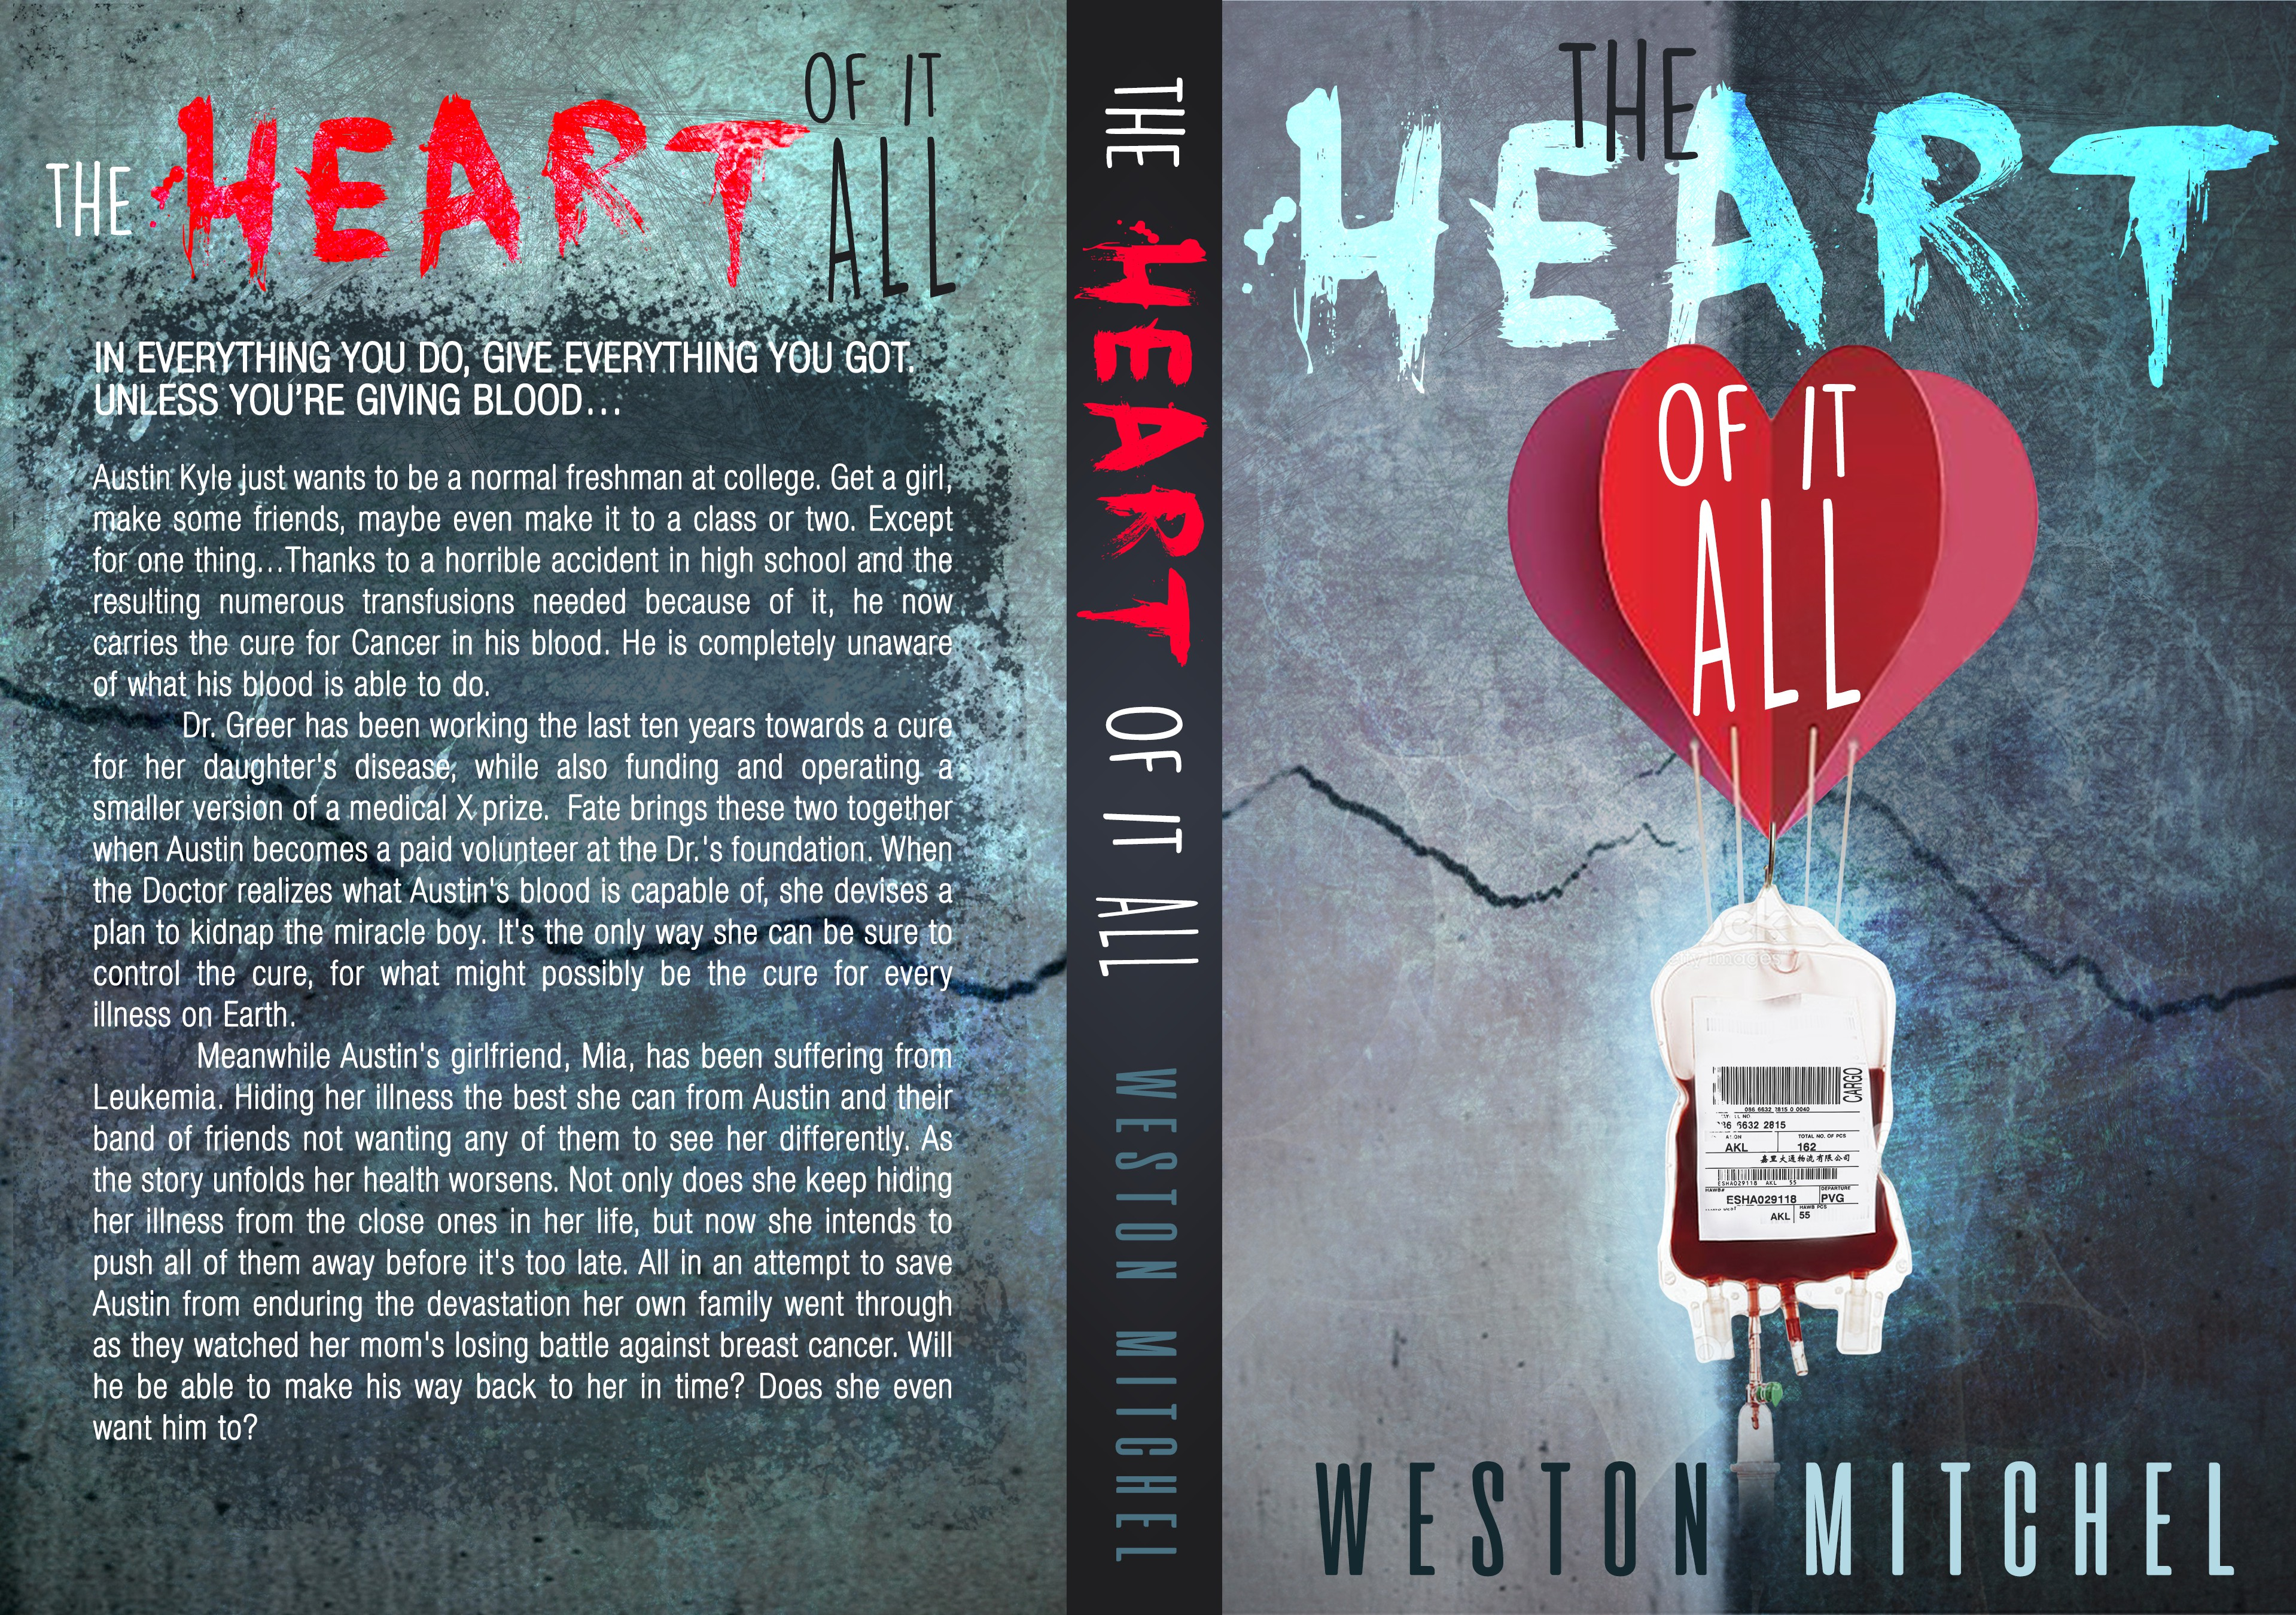 Design an original, provocative cover for The Heart of It All